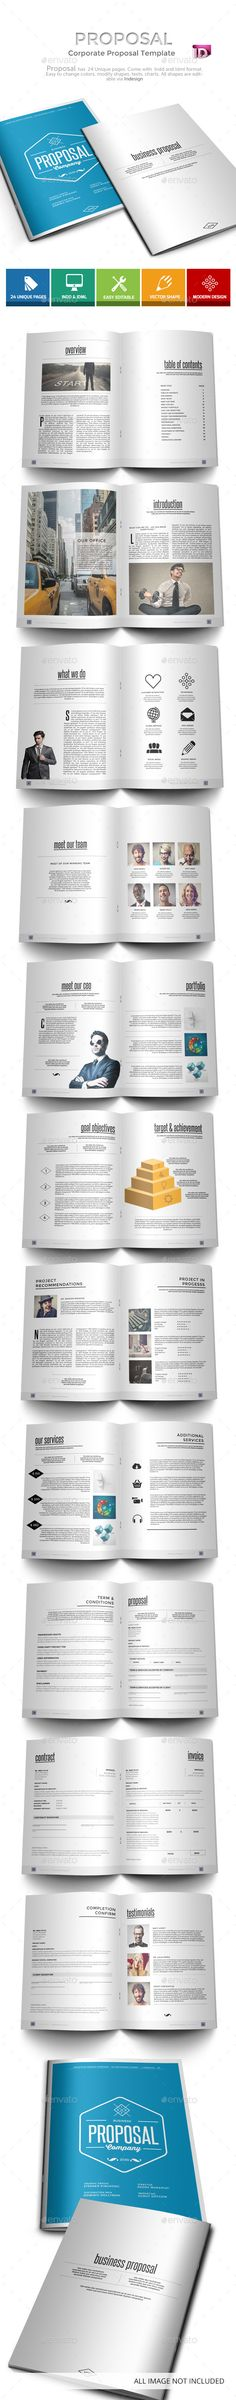 Modern Business Proposal Business proposal, Proposals and - download business proposal template